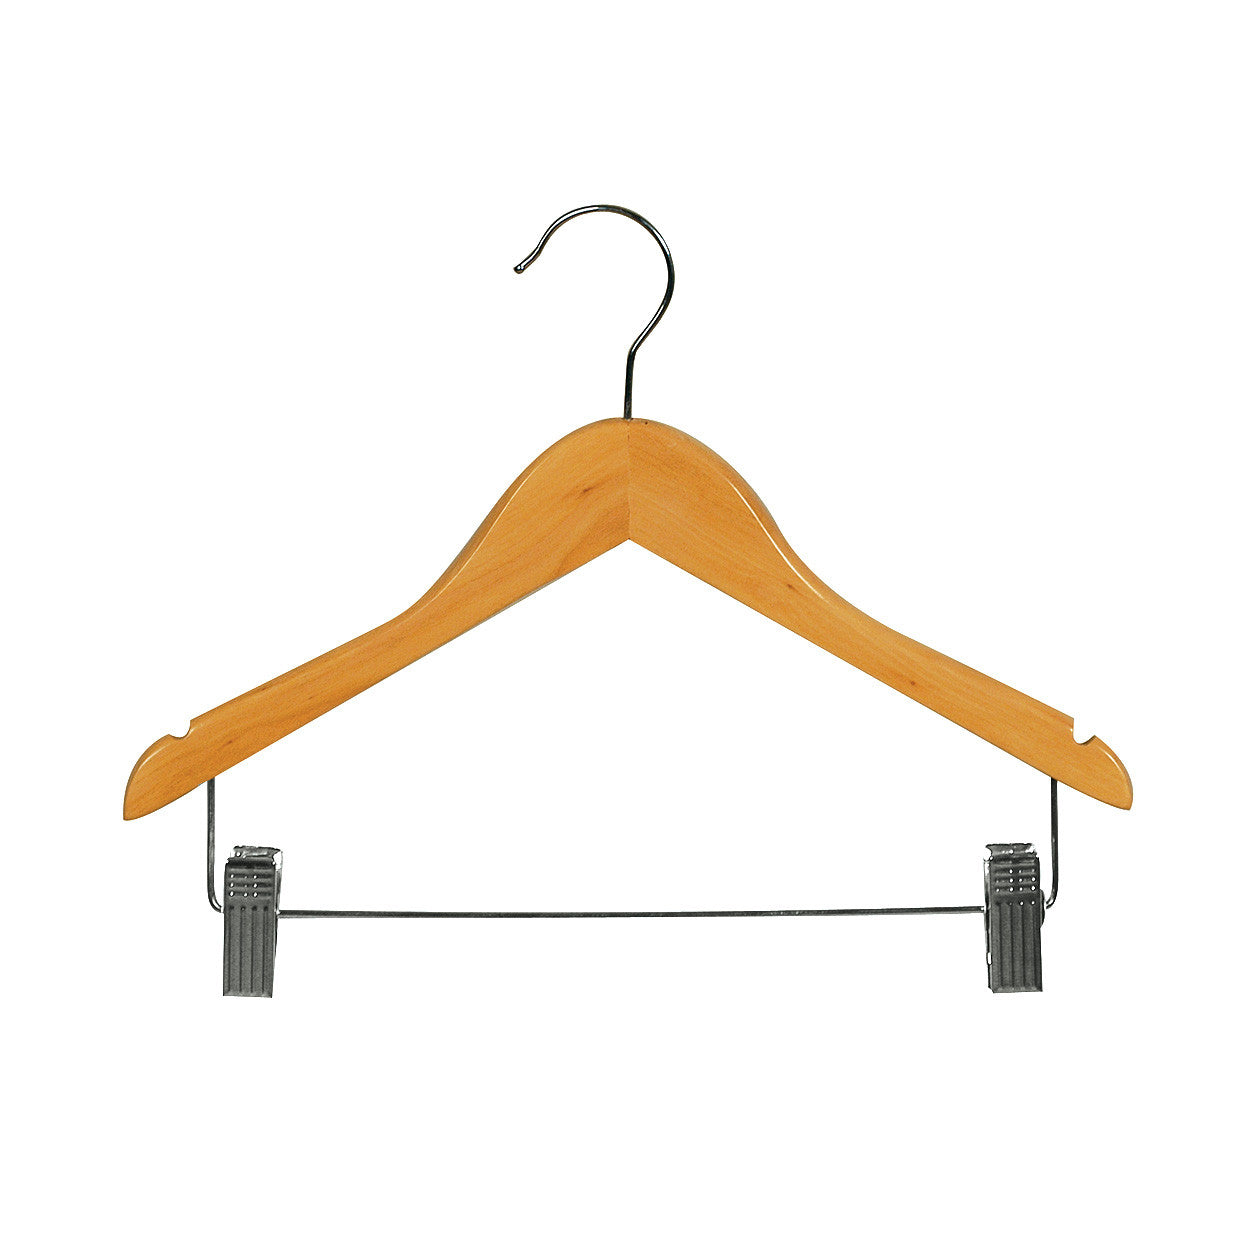 Beech Kids wooden hanger with notches & adjustable clips 350 W x 12mm Thick (Box of 100) H2605BH-100